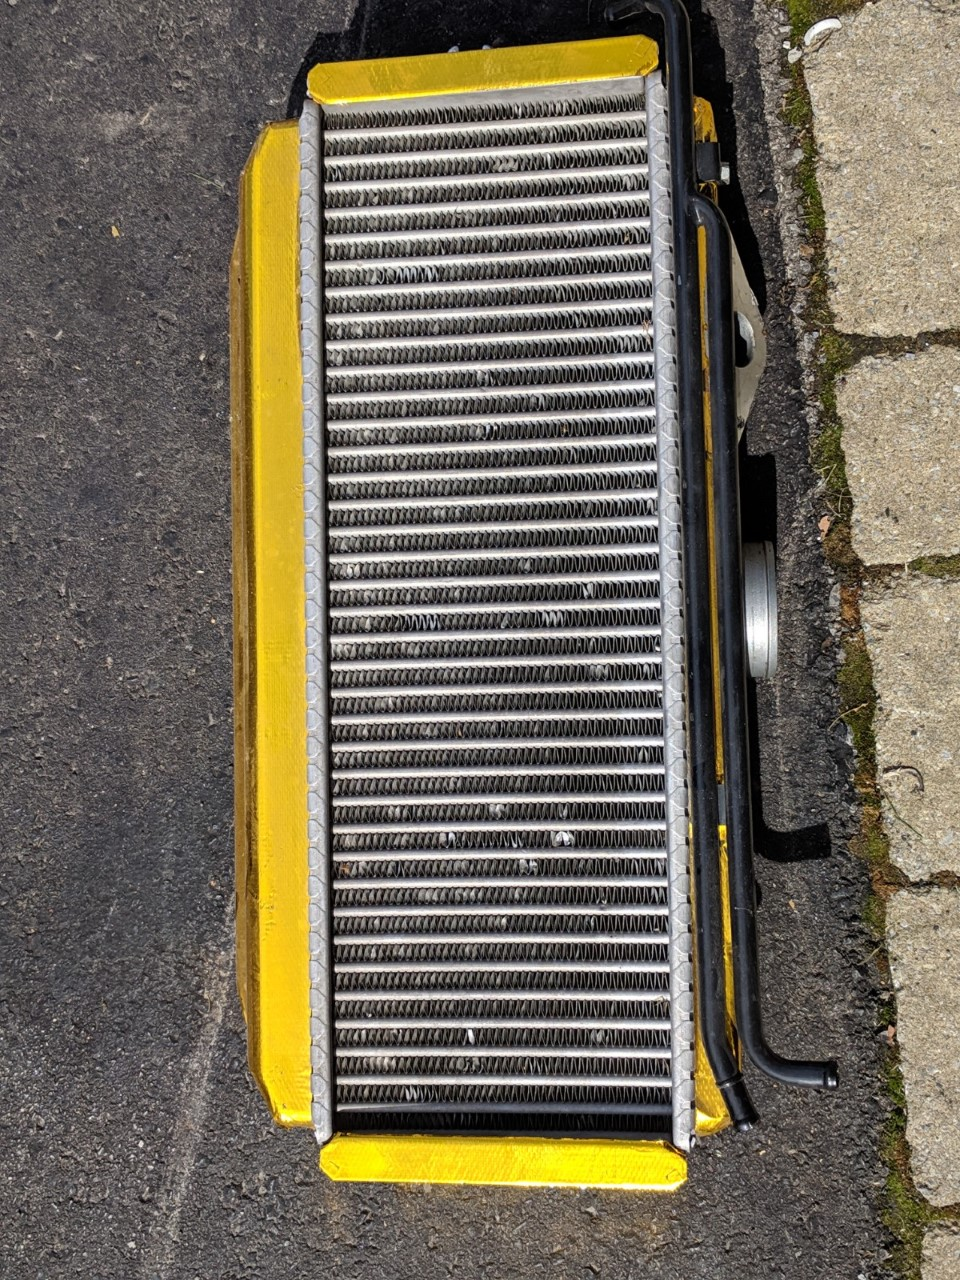 STI GR Intercooler, used, 50000km 0usd-thumbnail_img_20190504_153129-jpg